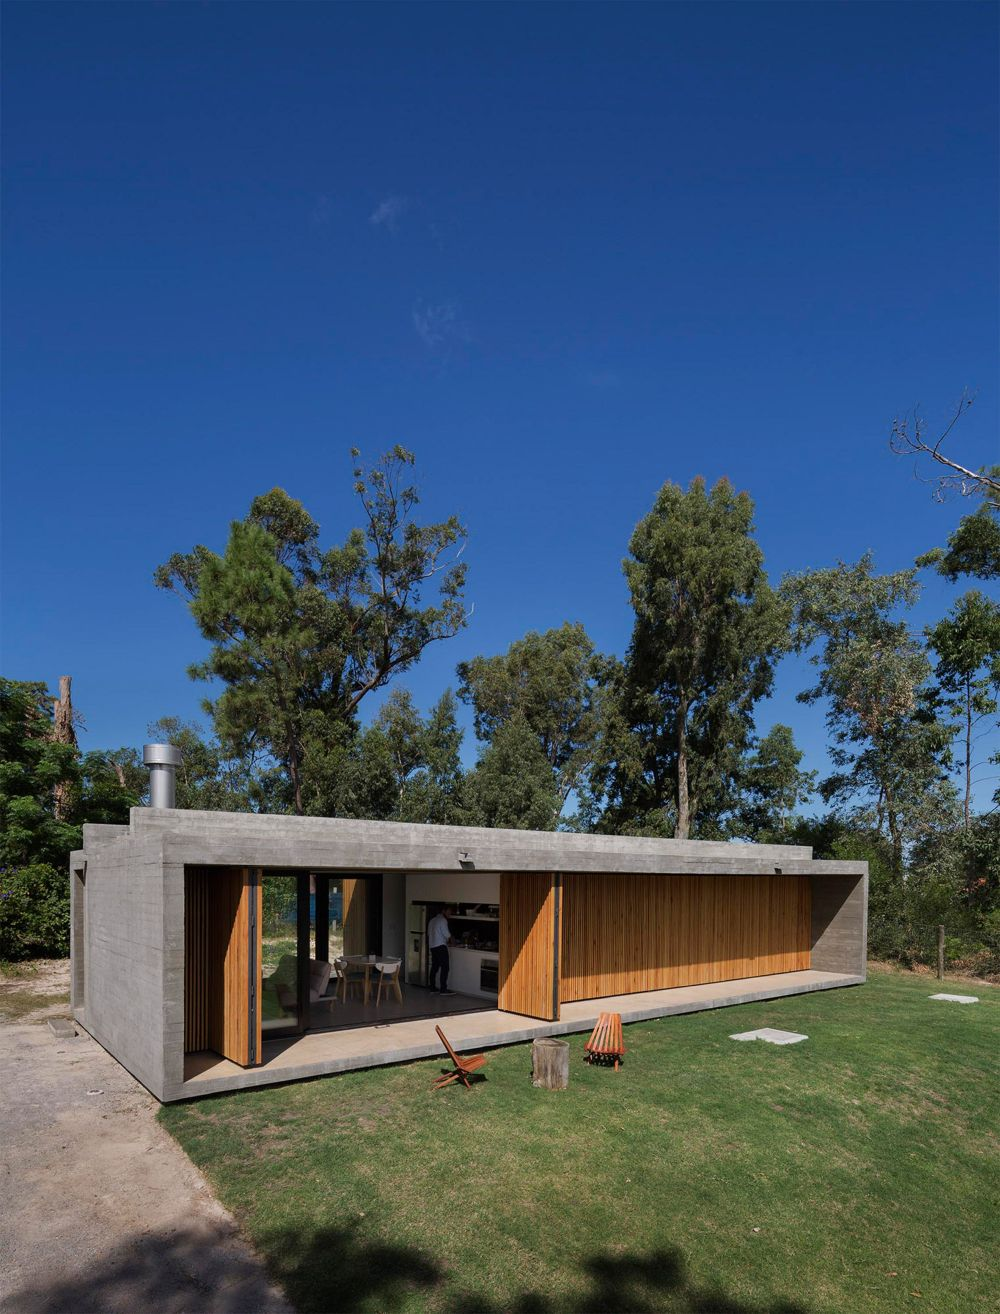 The house is long and rectangular and has a single level and a concrete shell